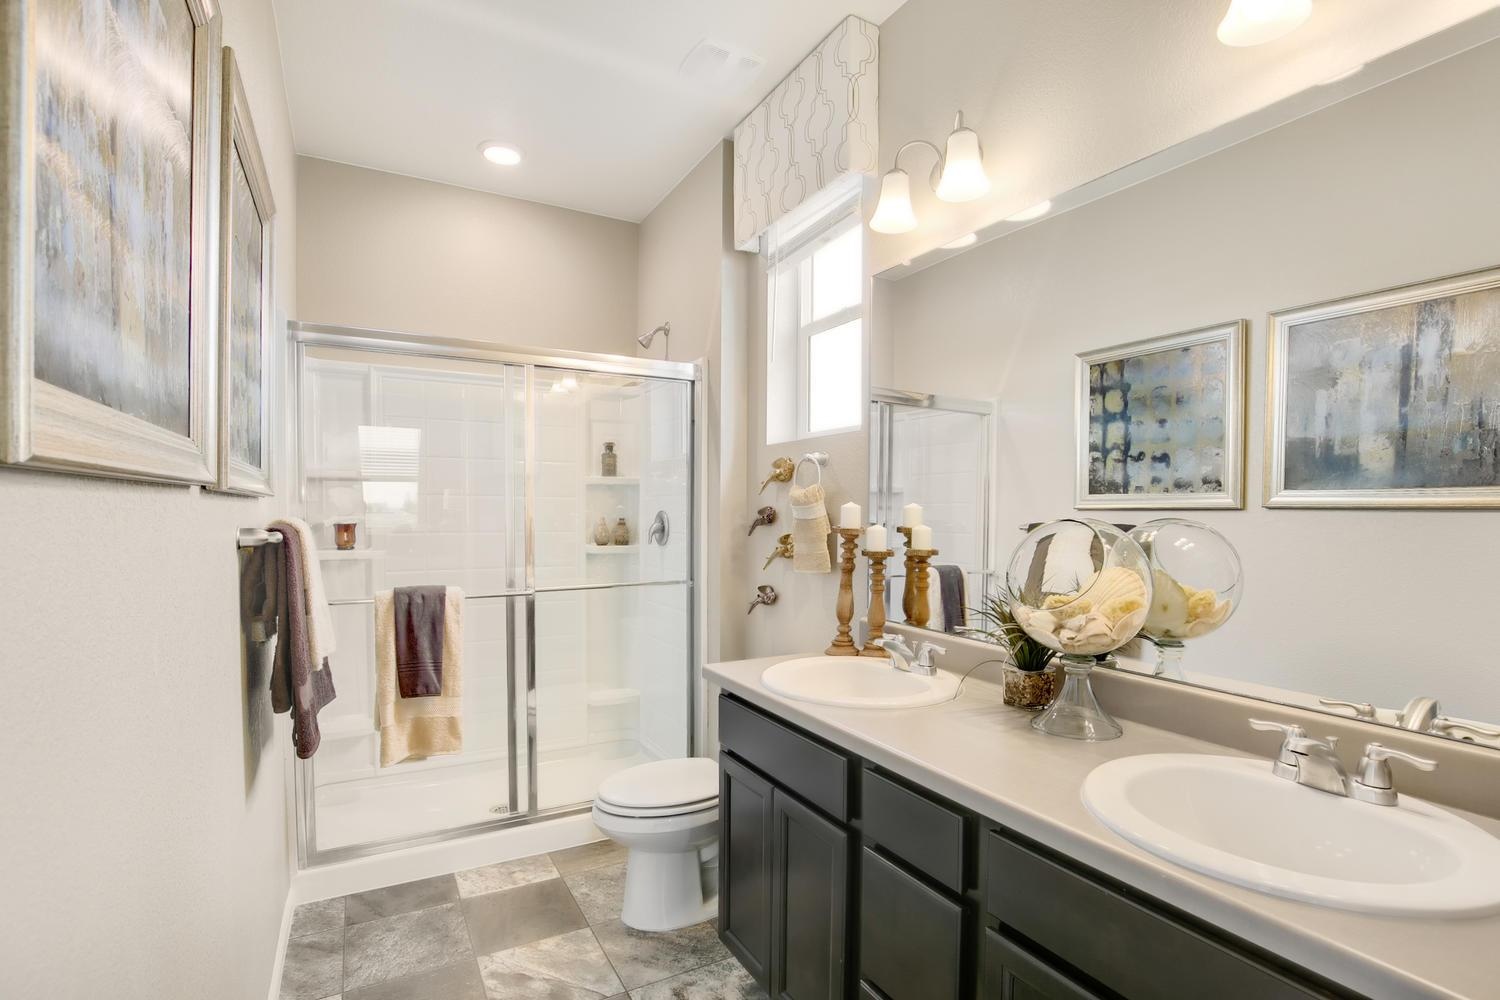 Bathroom featured in the NEUVILLE By D.R. Horton in Fort Collins-Loveland, CO